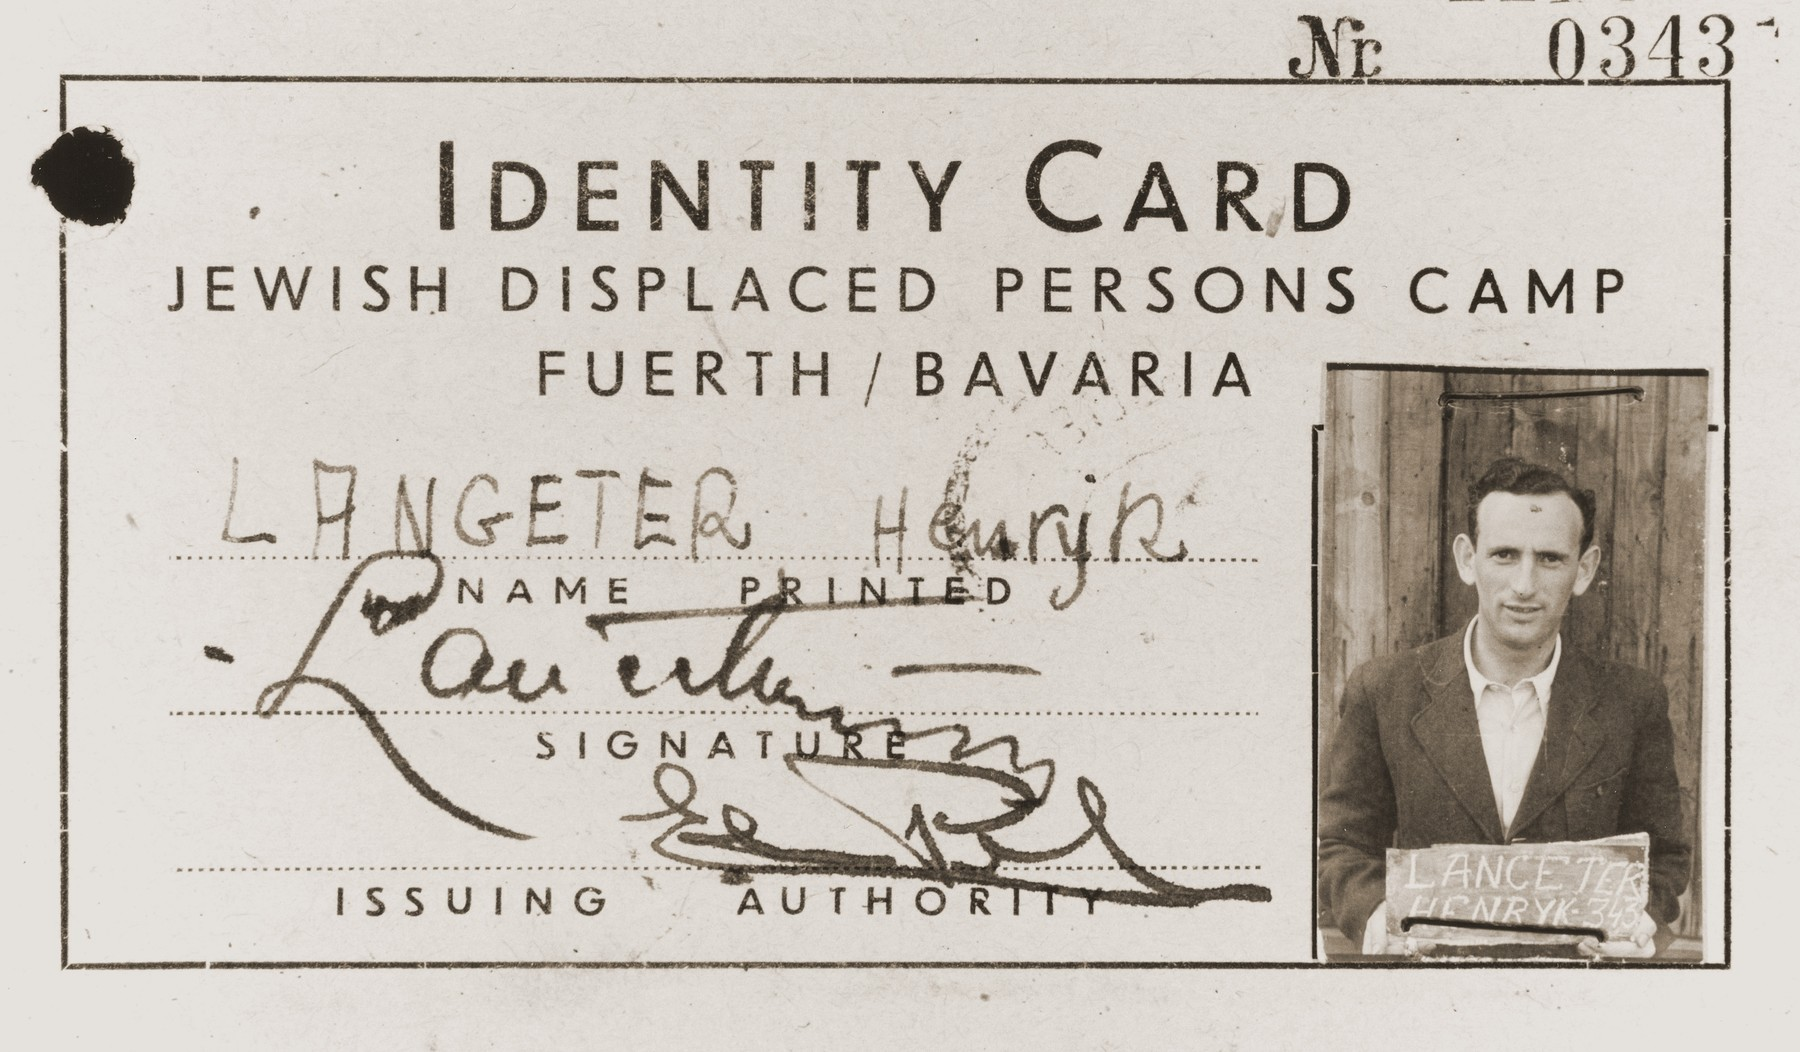 Identity card issued to Henryk Lanceter at the Jewish displaced persons camp in Fuerth, Bavaria.